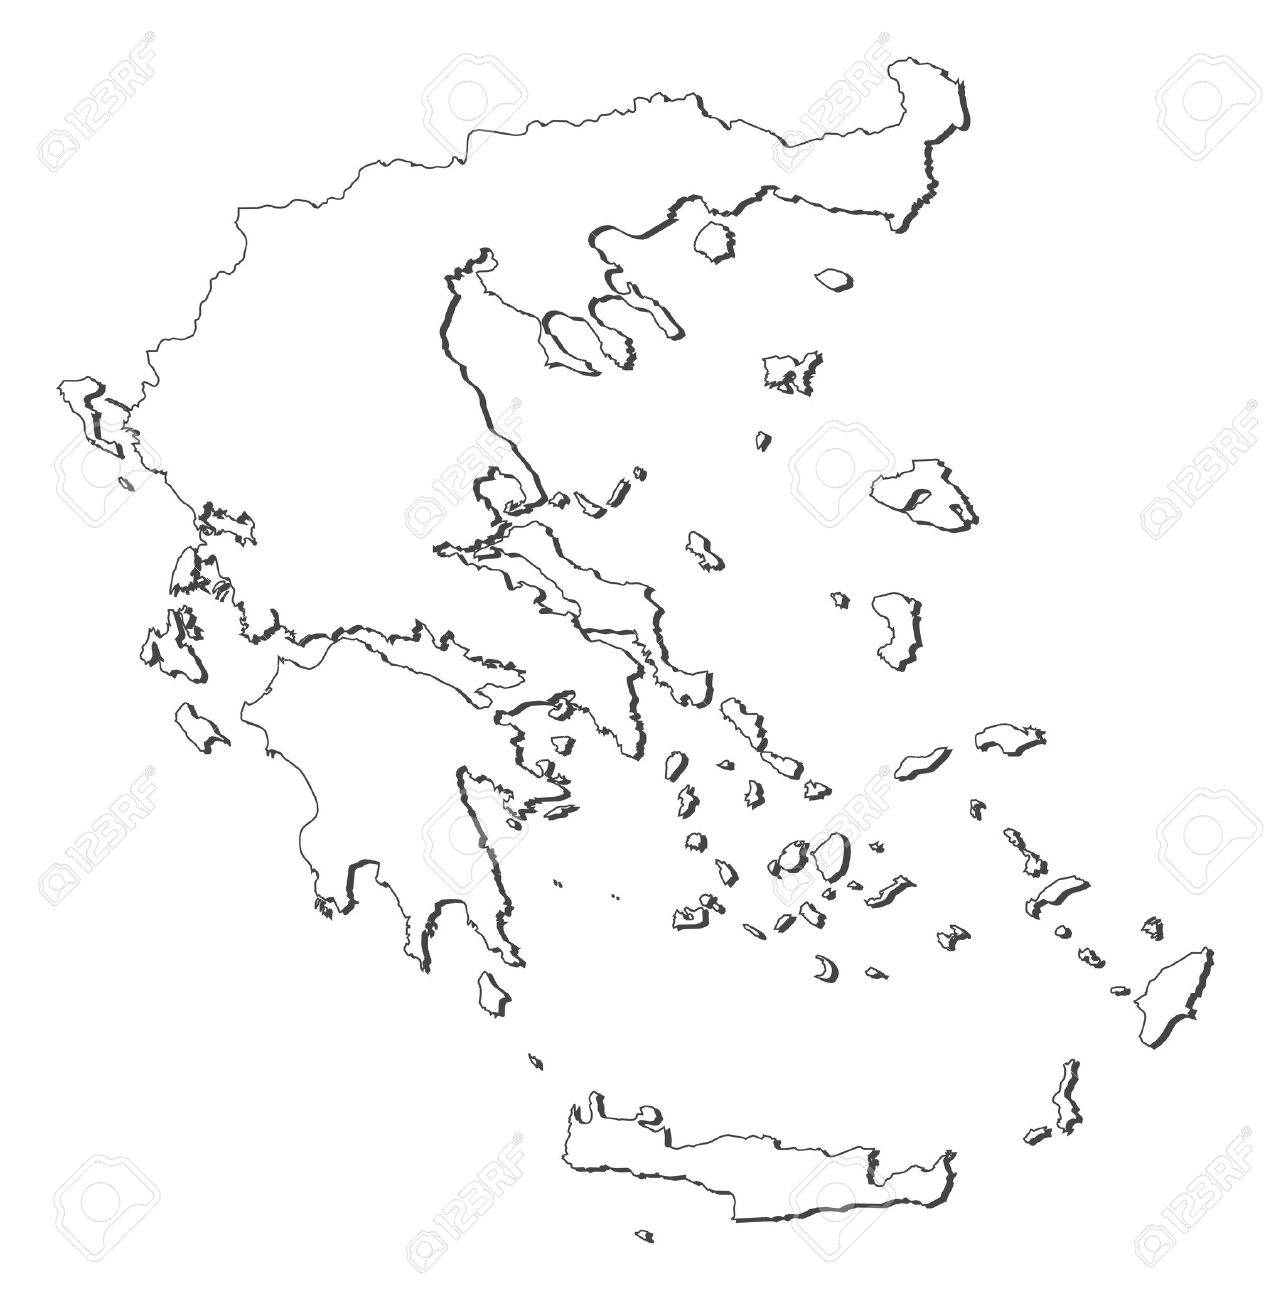 Political map of Greece with the several states. - 11451566